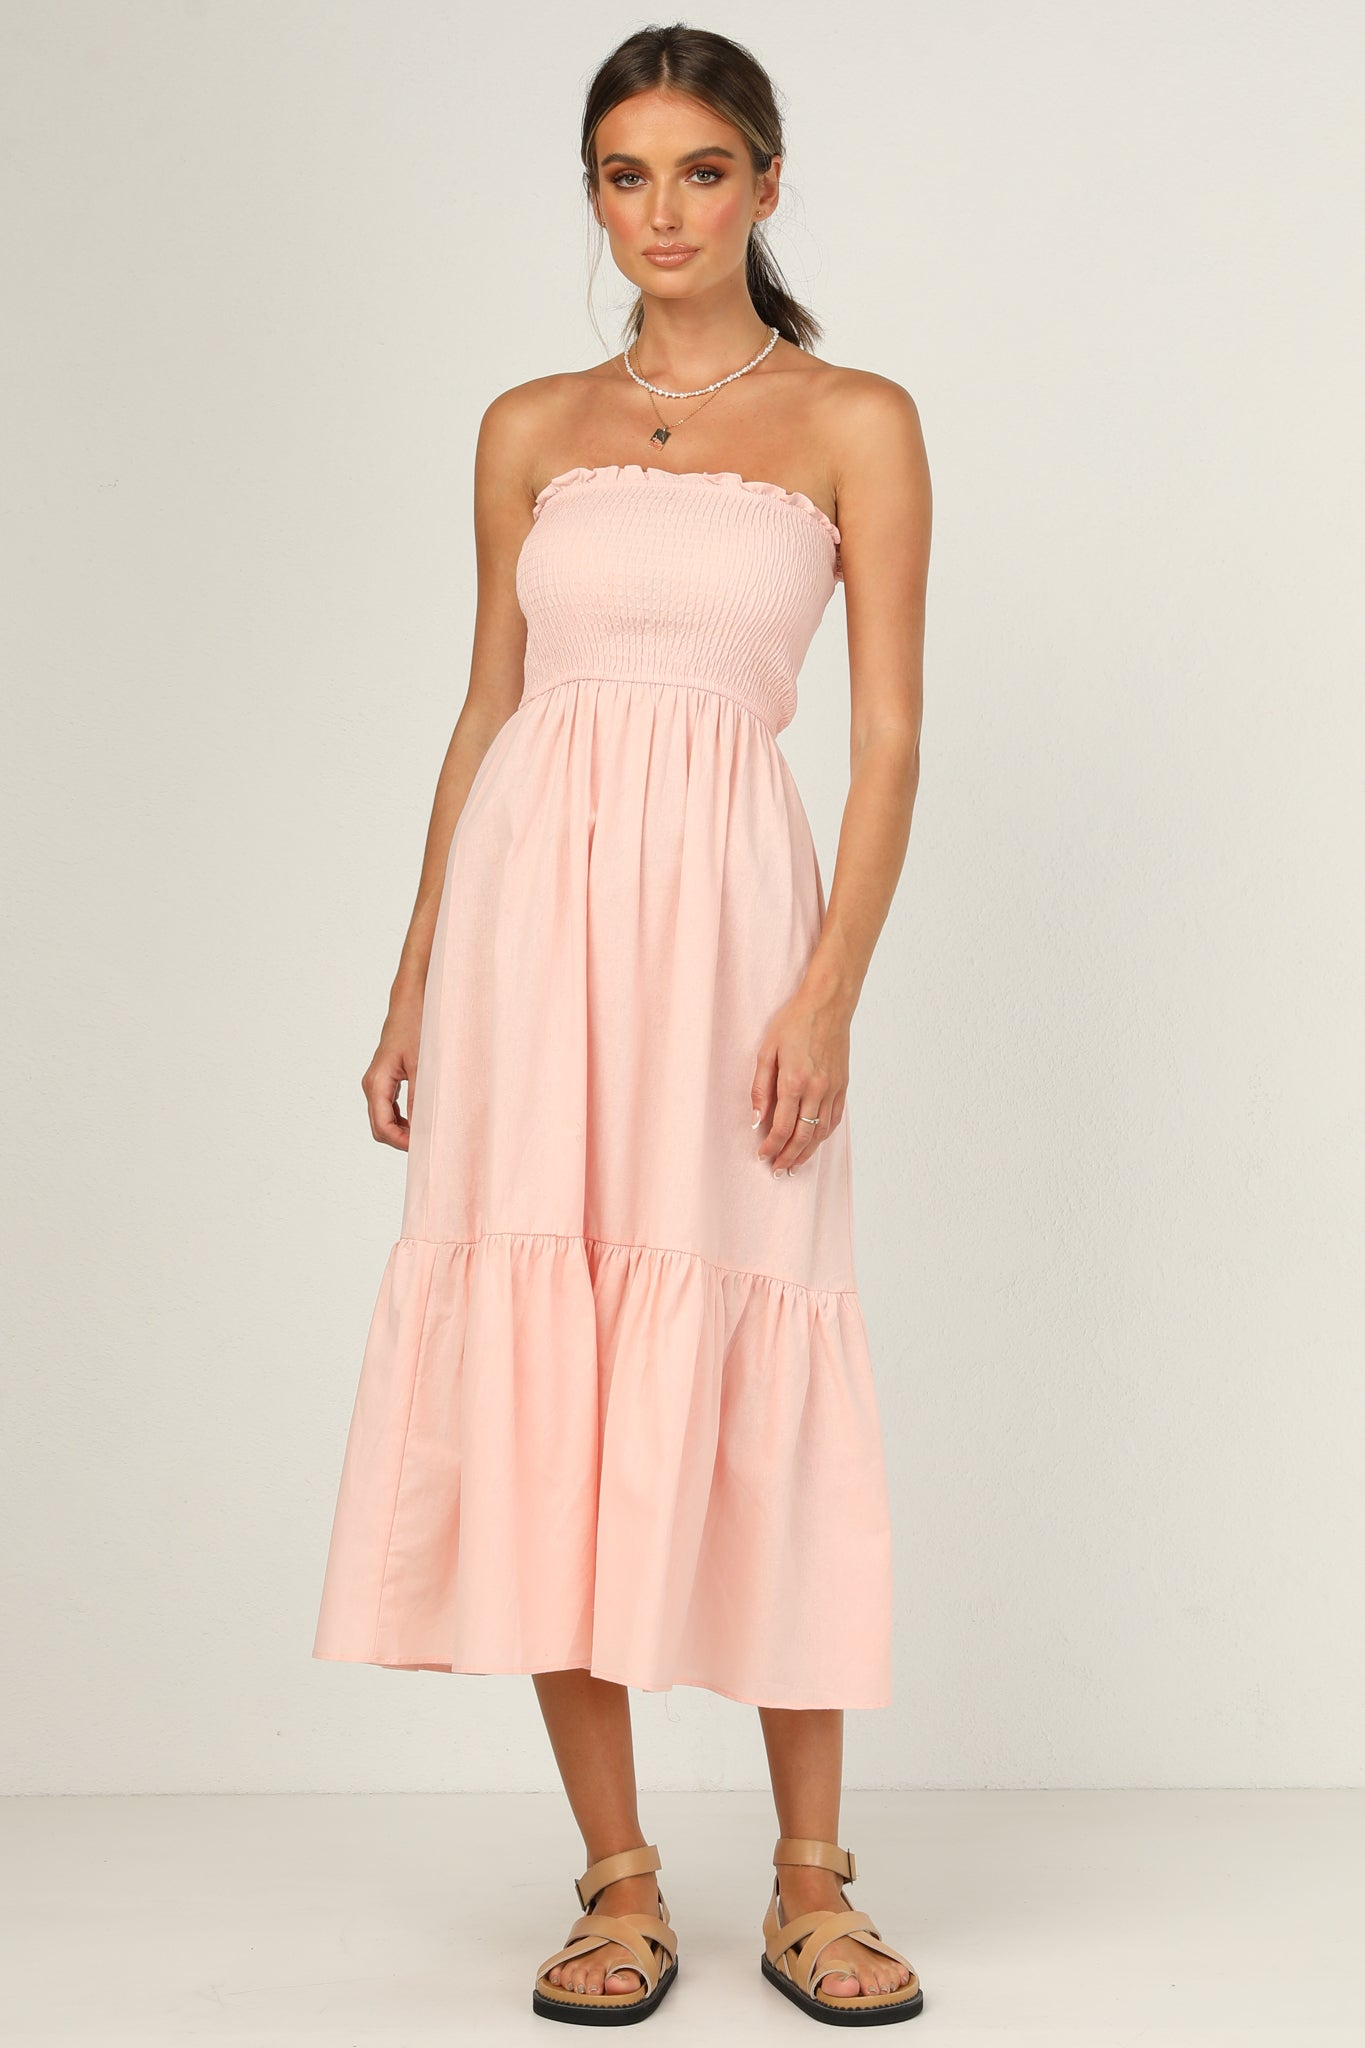 Geneva Strapless Dress (Pink)